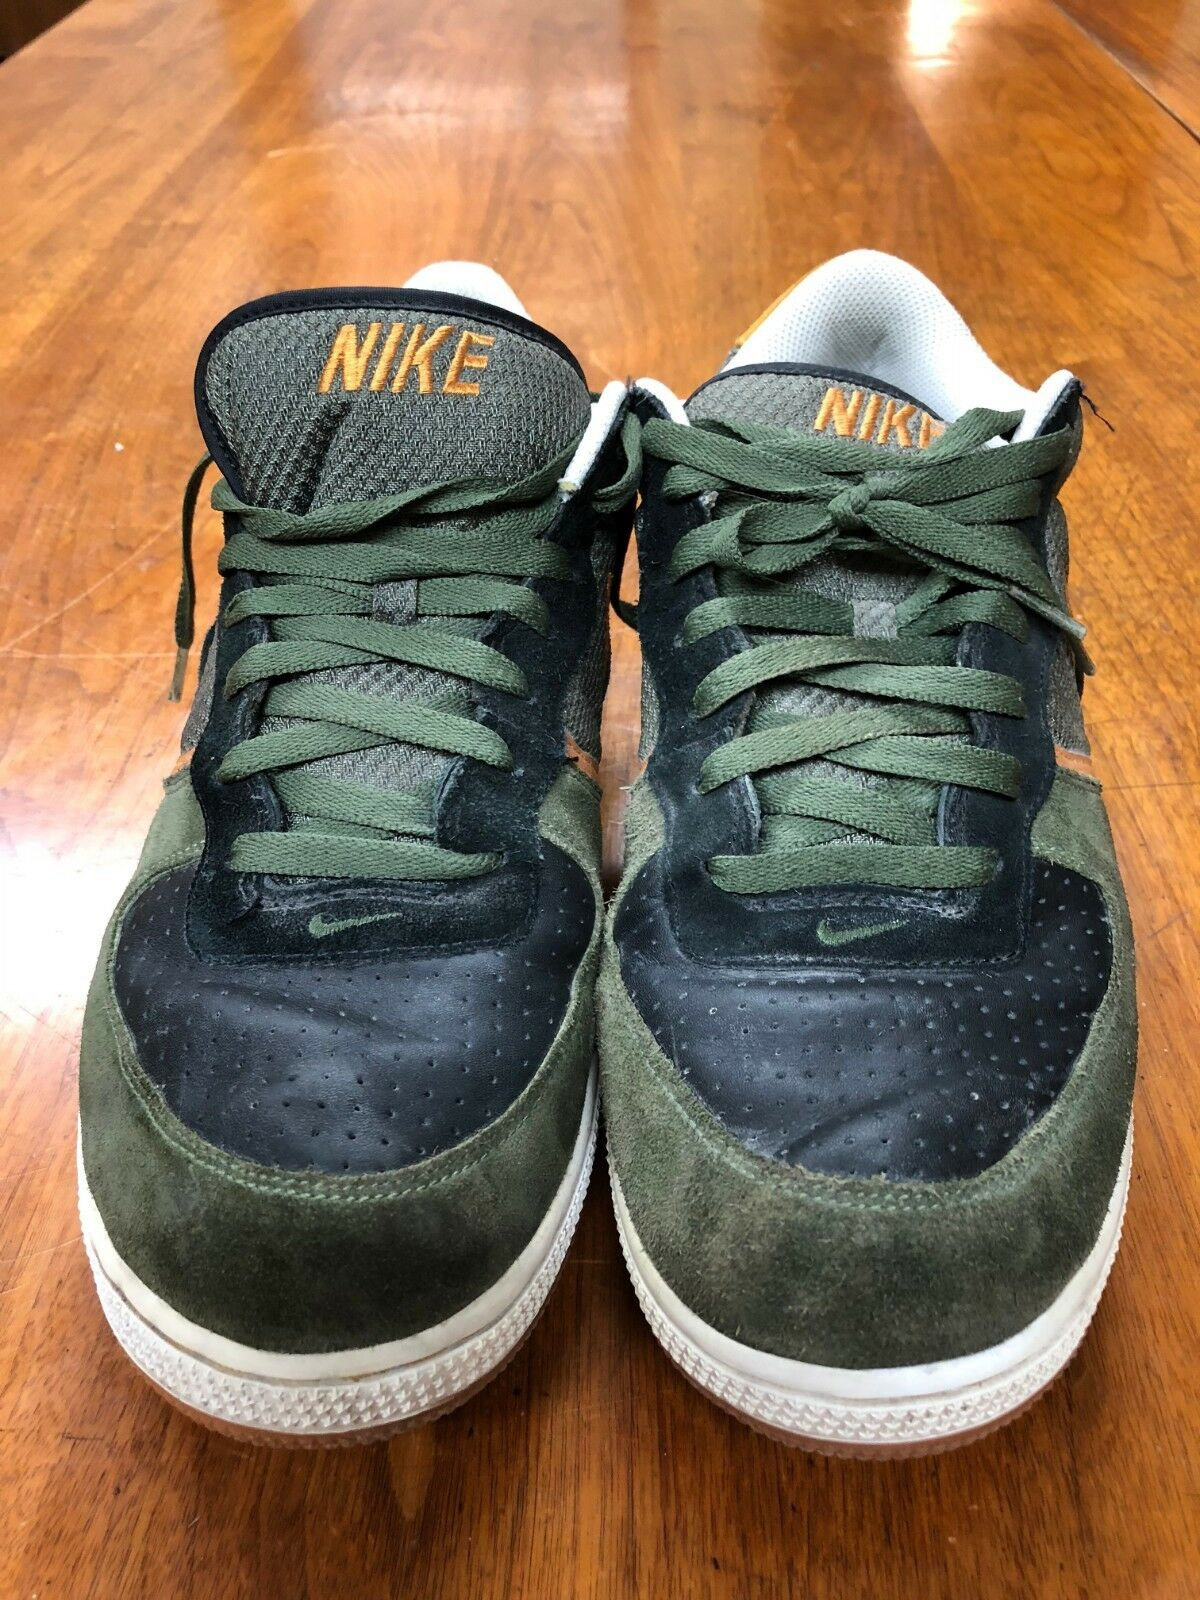 2007 Nike Air Zoom Infiltrator A Army Olive Black Chutney White shoes Size 13